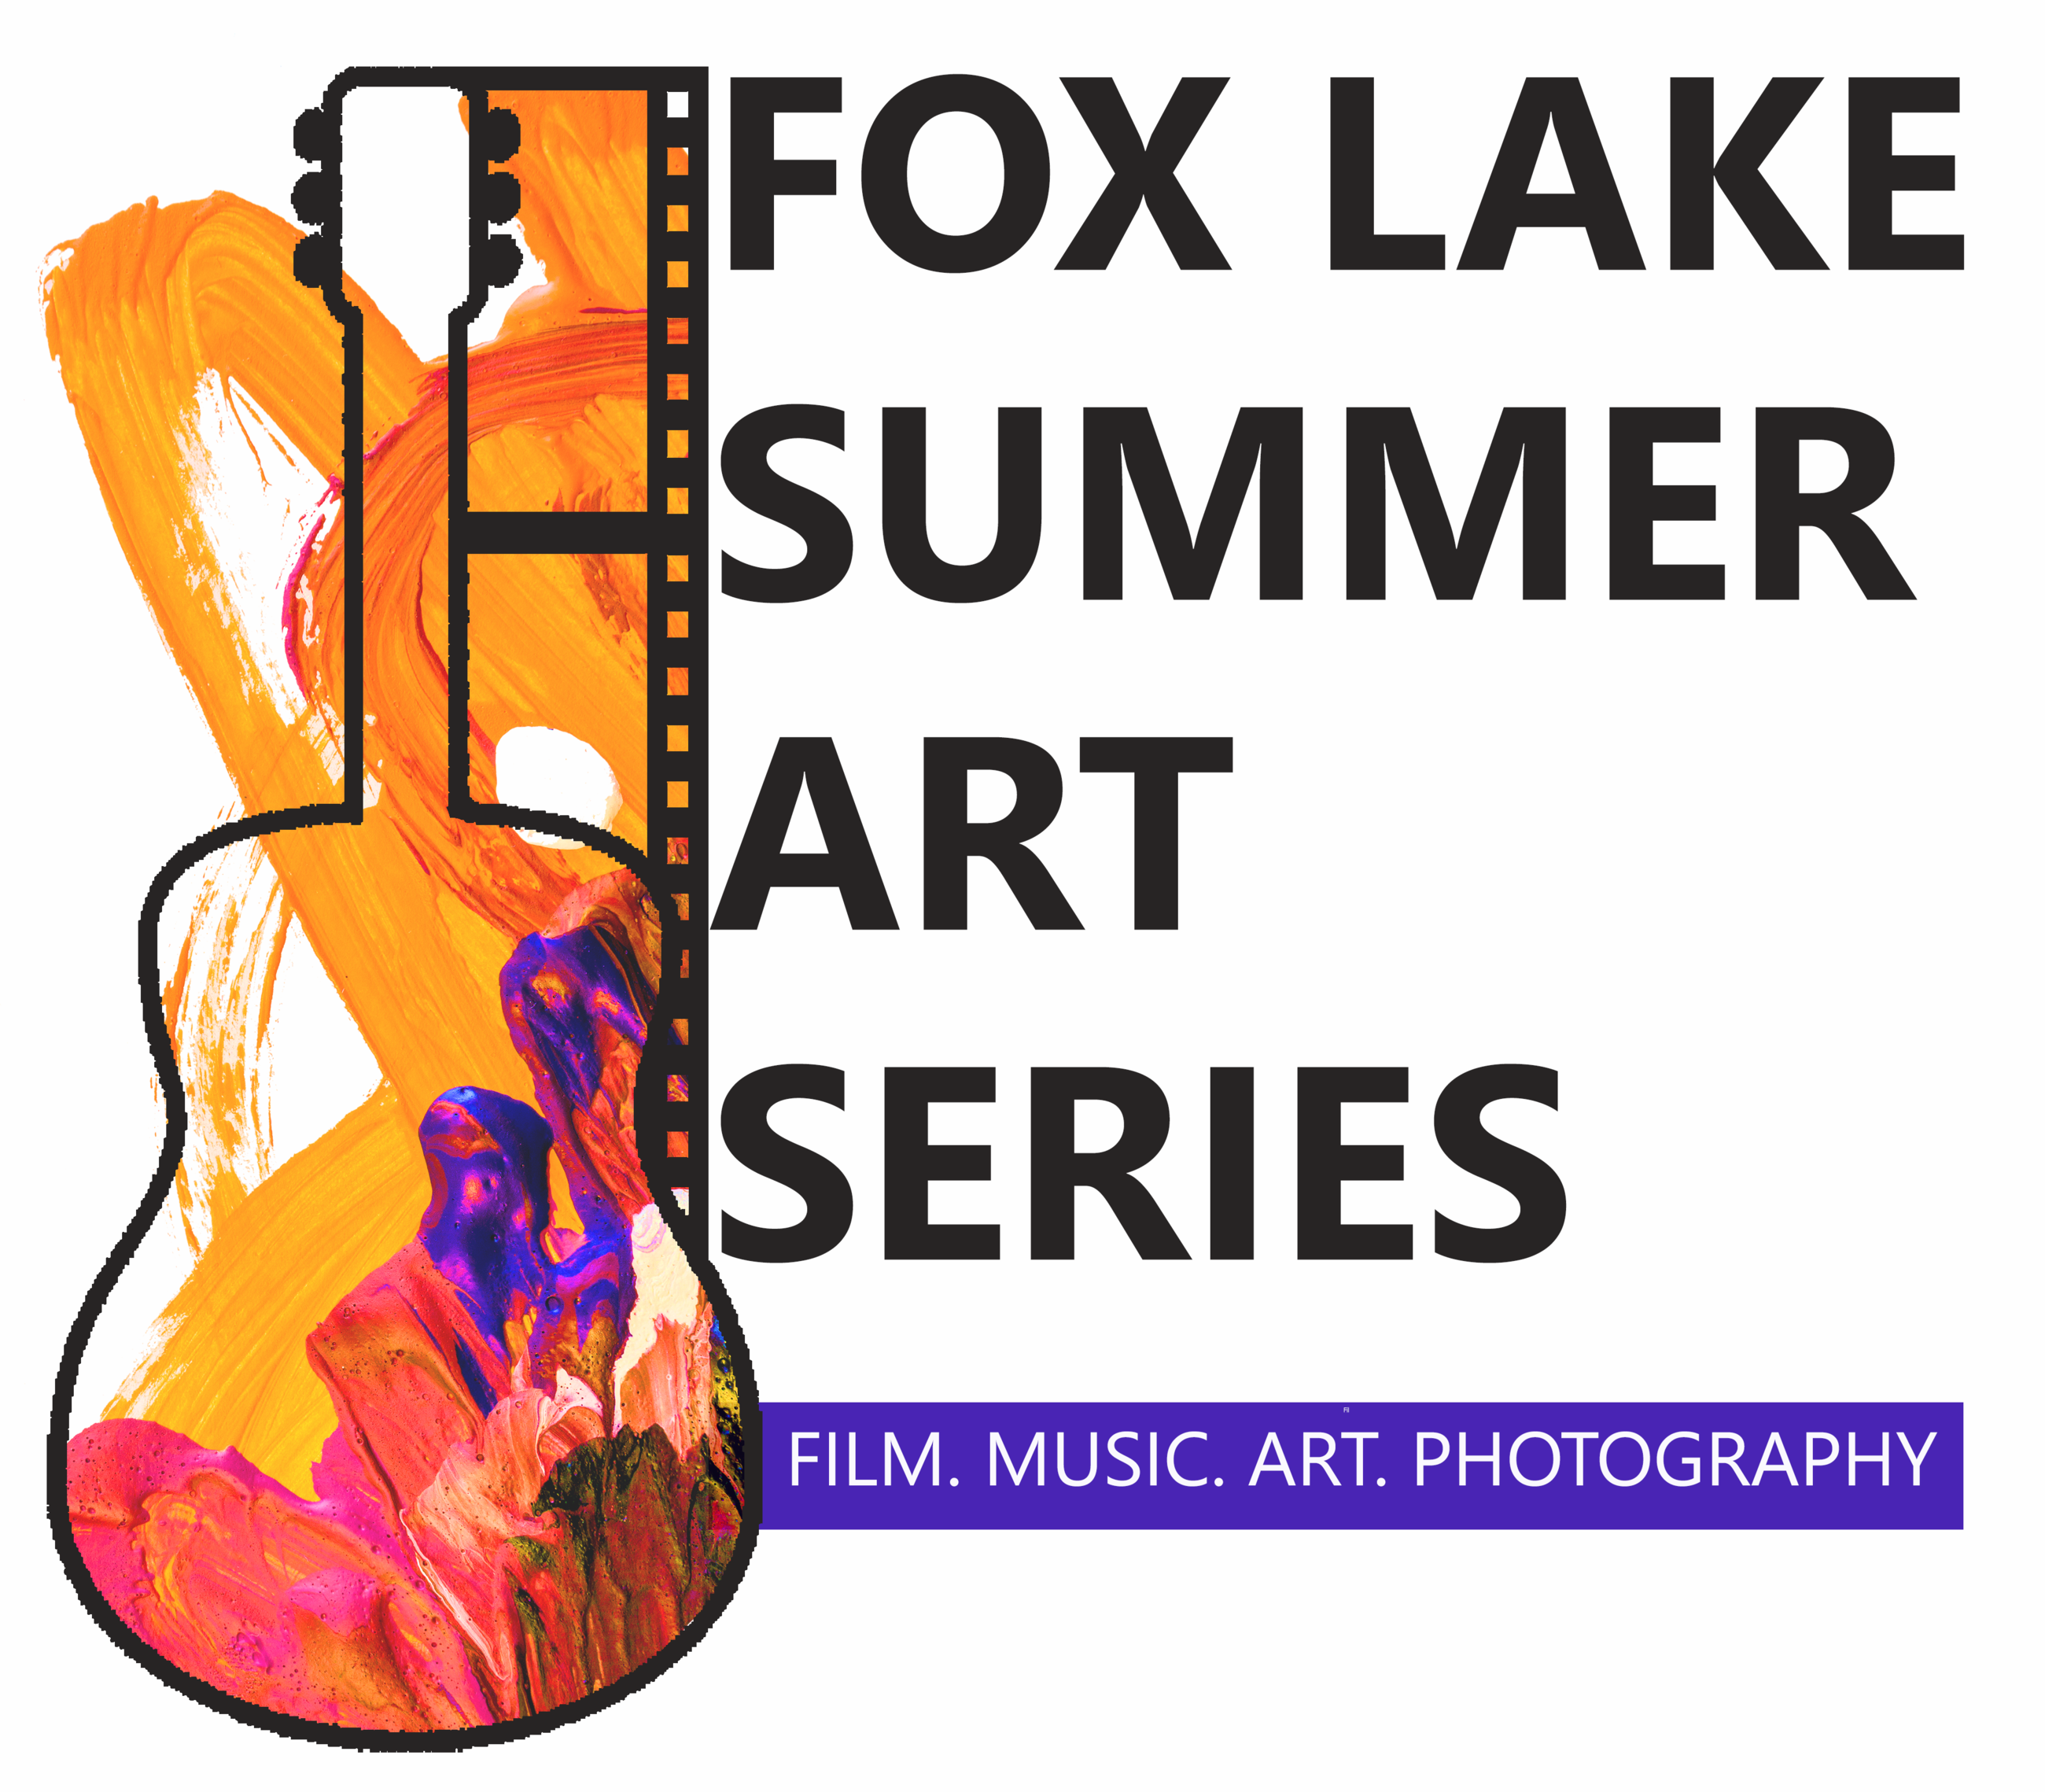 SUMMER ART SERIES LOGO WITH WORDS